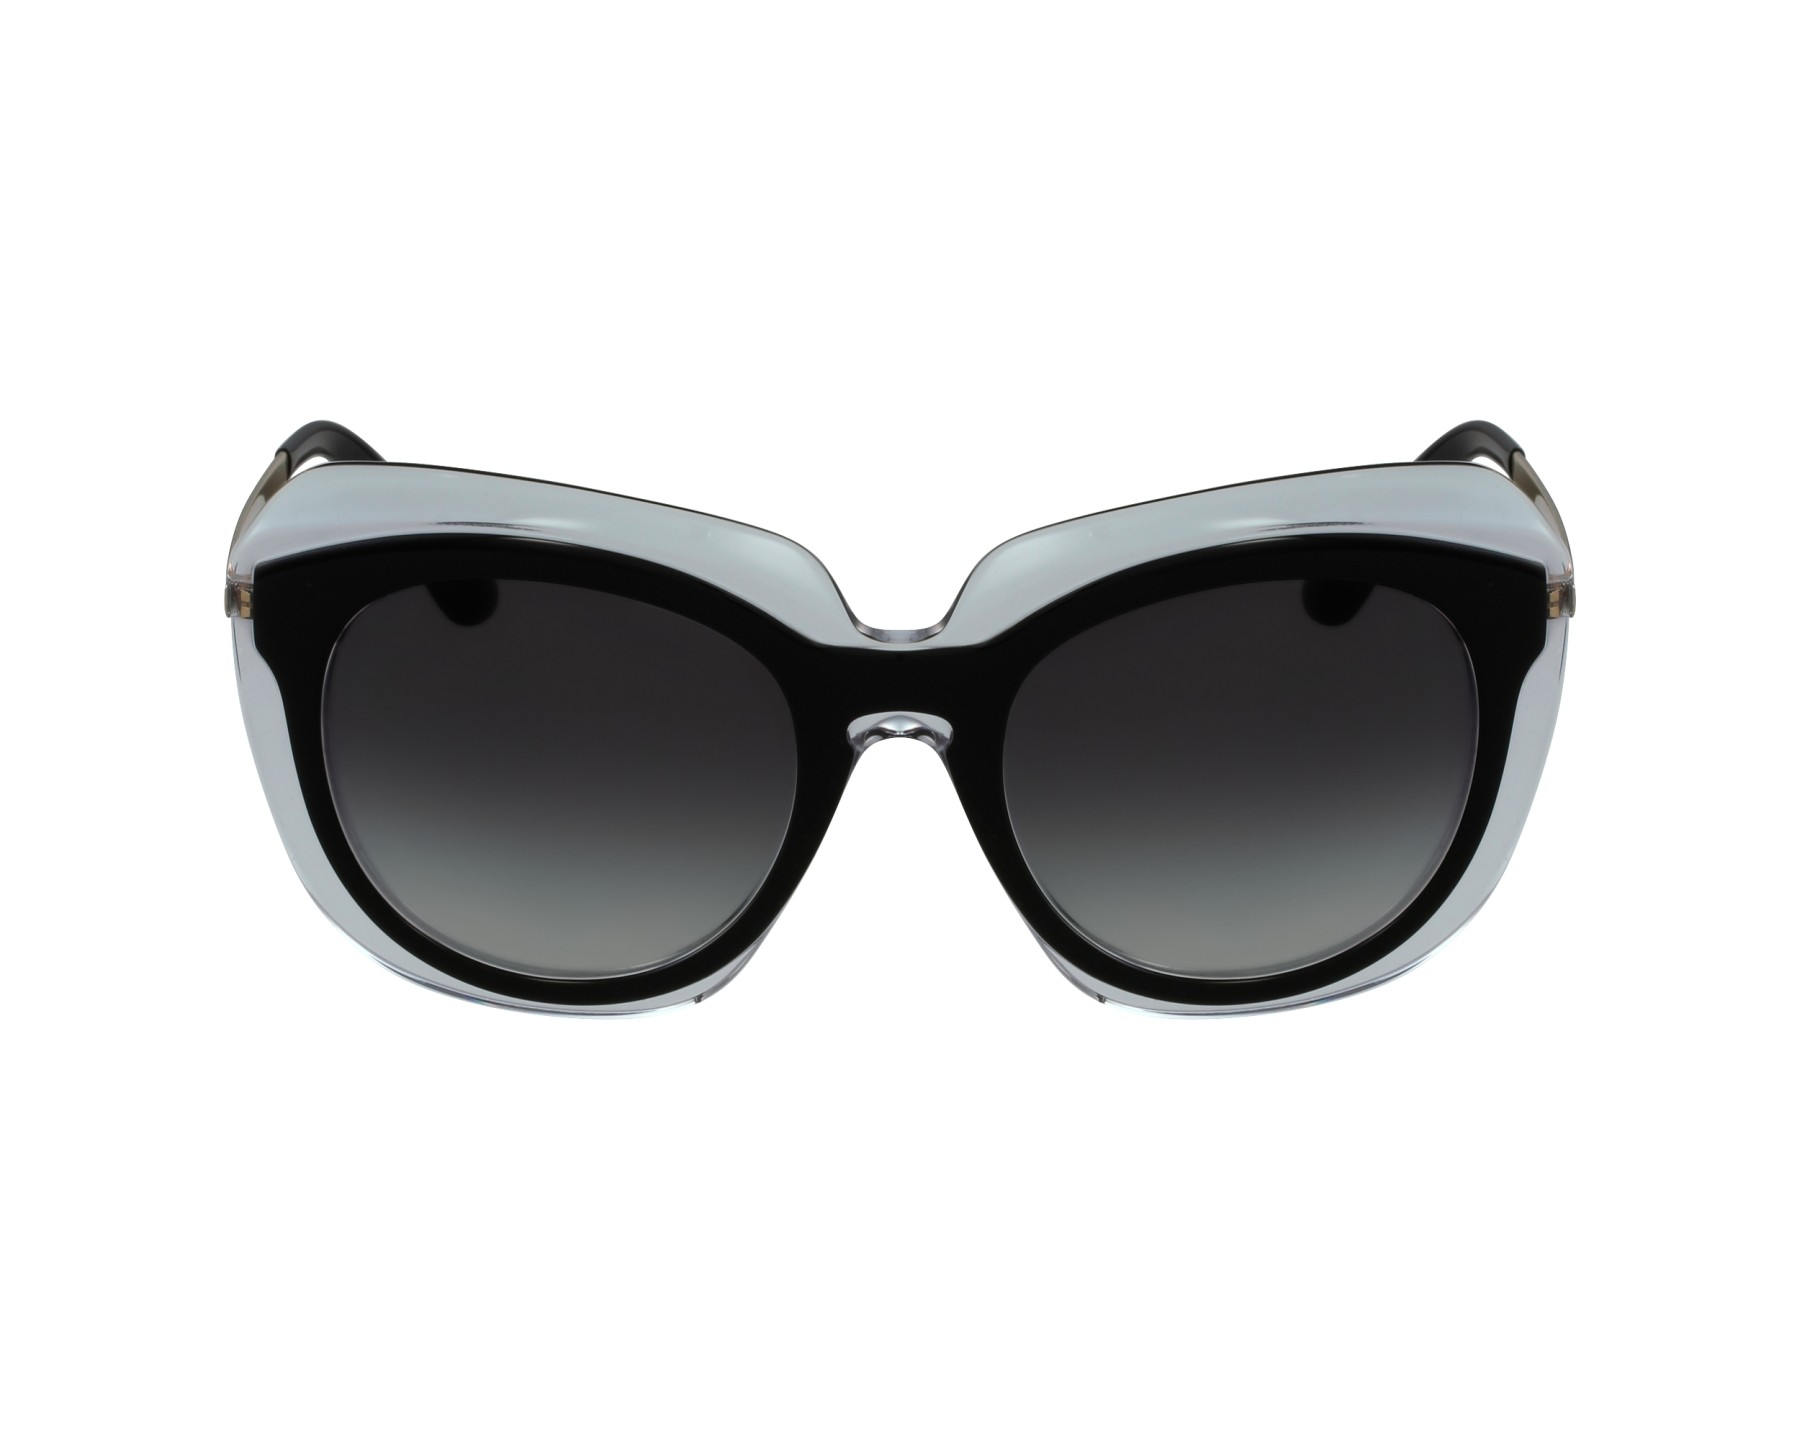 6be447e280 thumbnail Sunglasses Dolce & Gabbana DG-4282 675/8G - Black Crystal profile  view